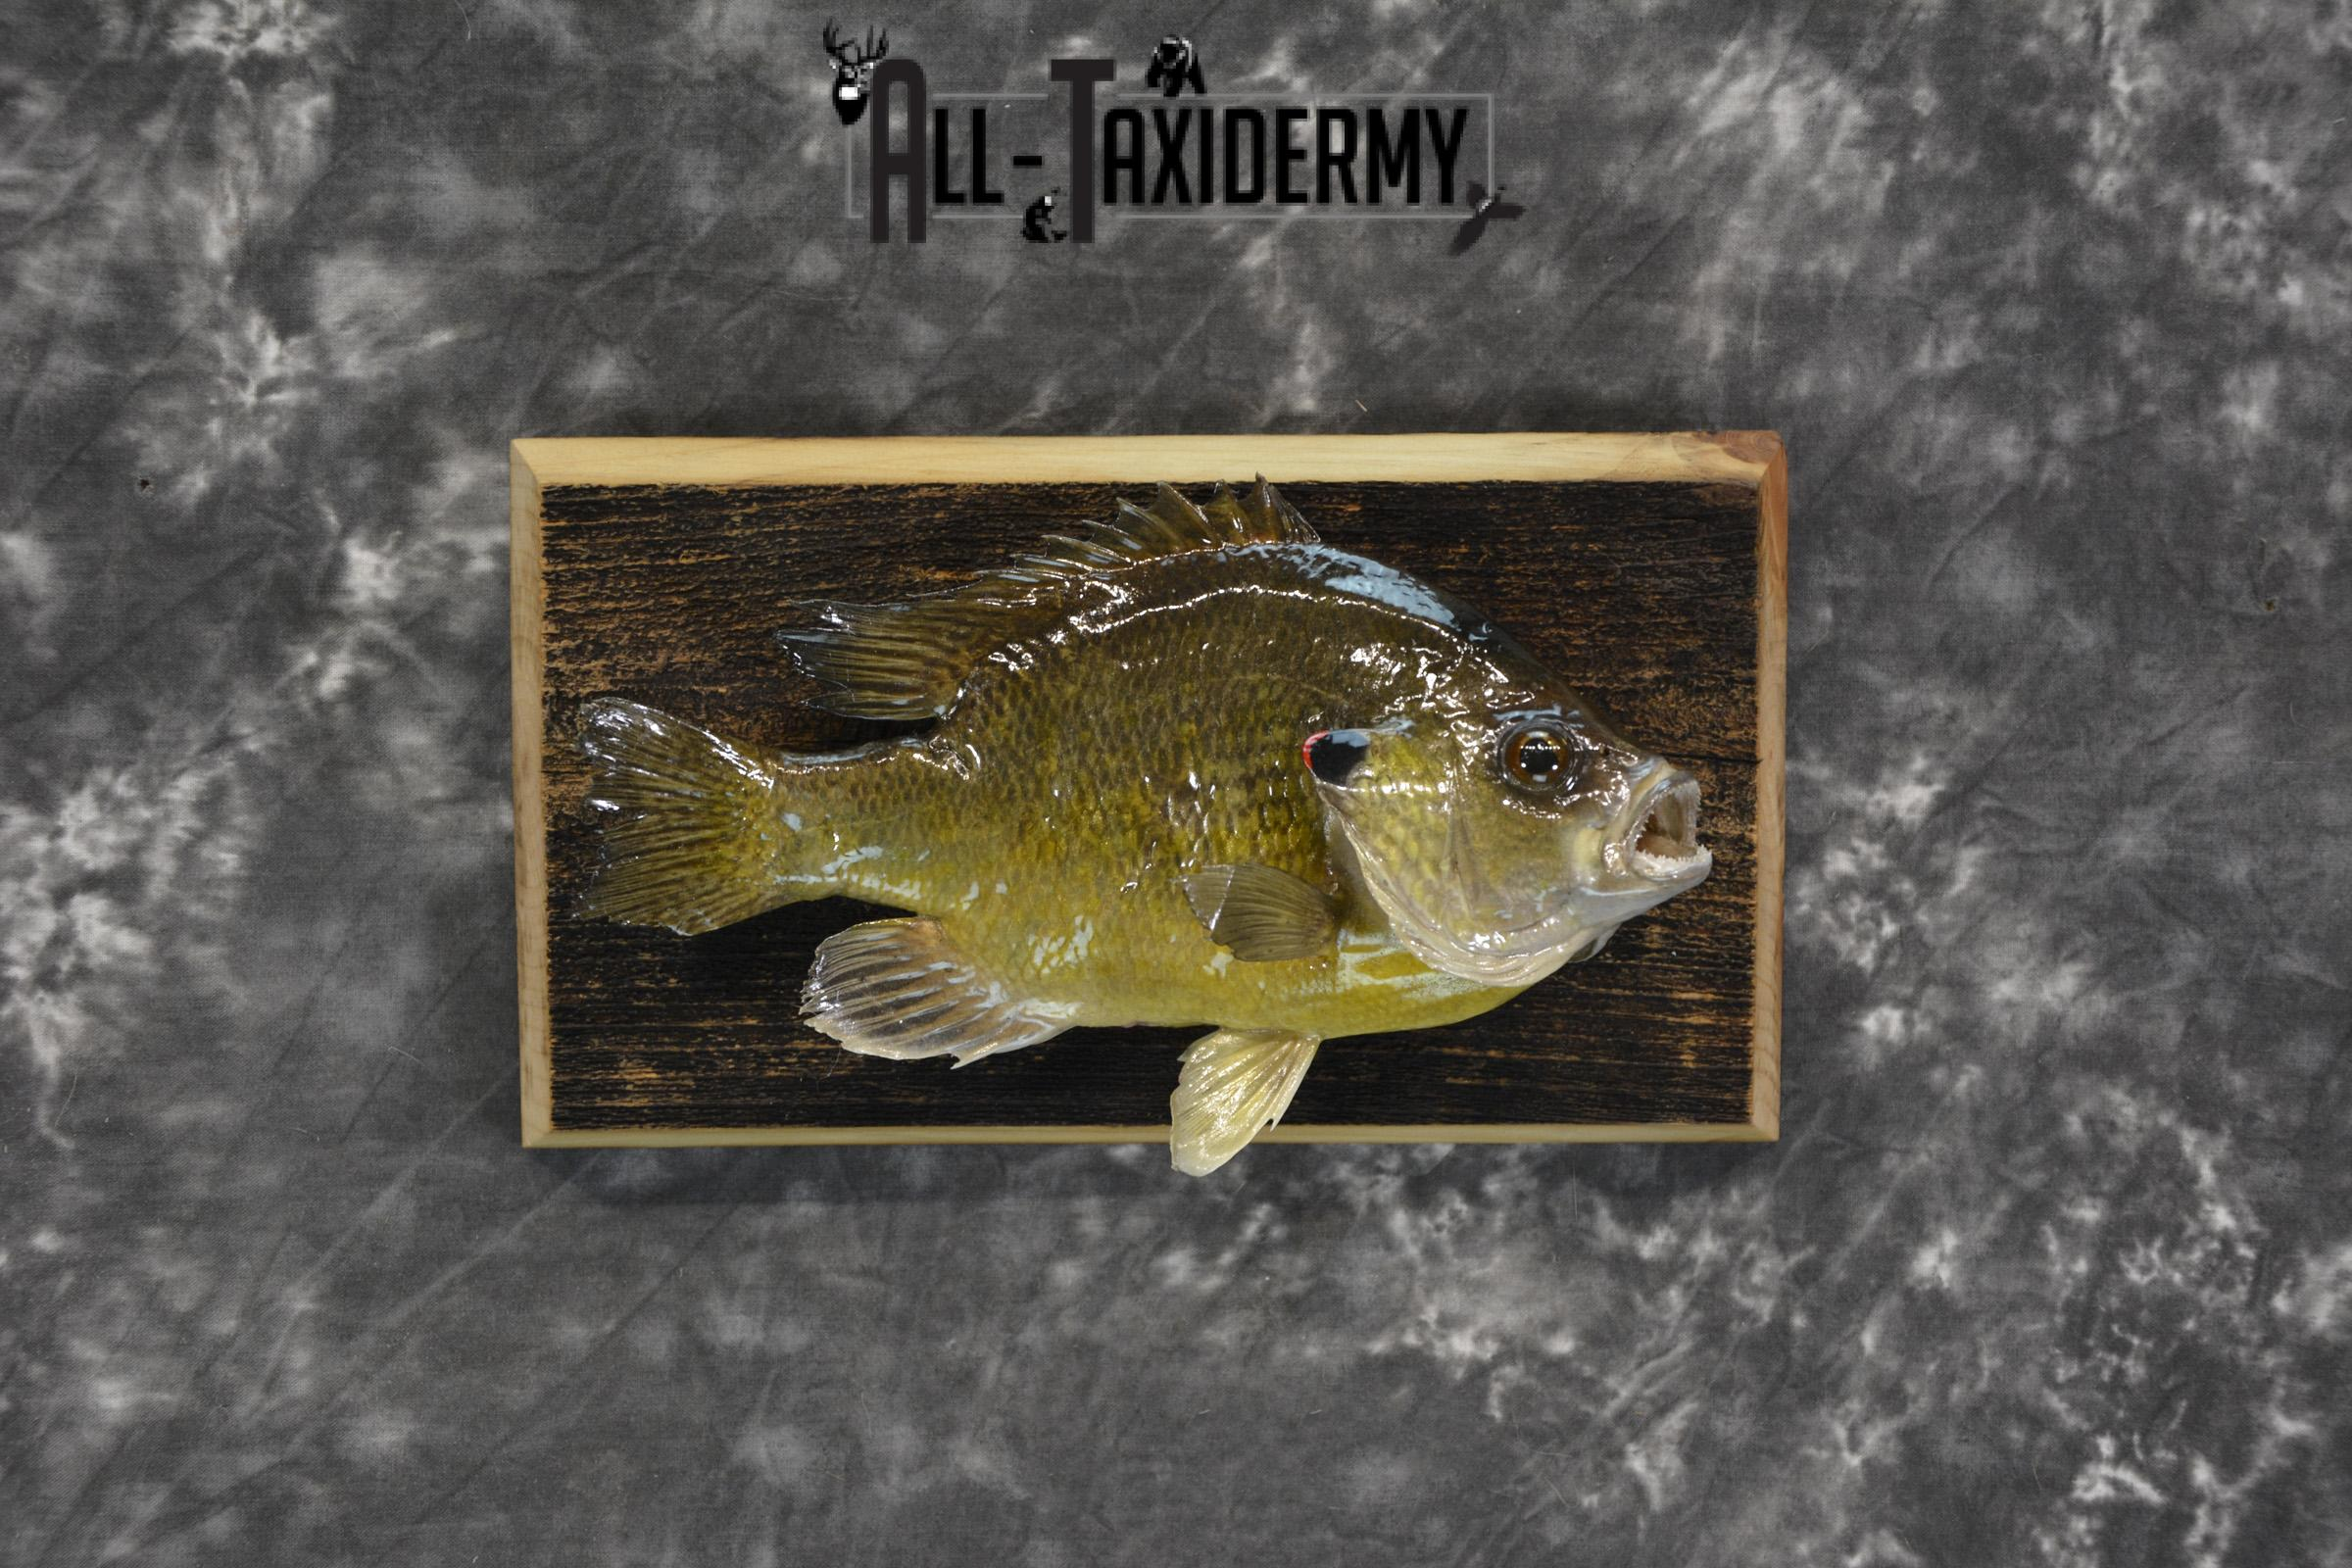 Bluegill taxidermy fish mount for sale SKU 1852